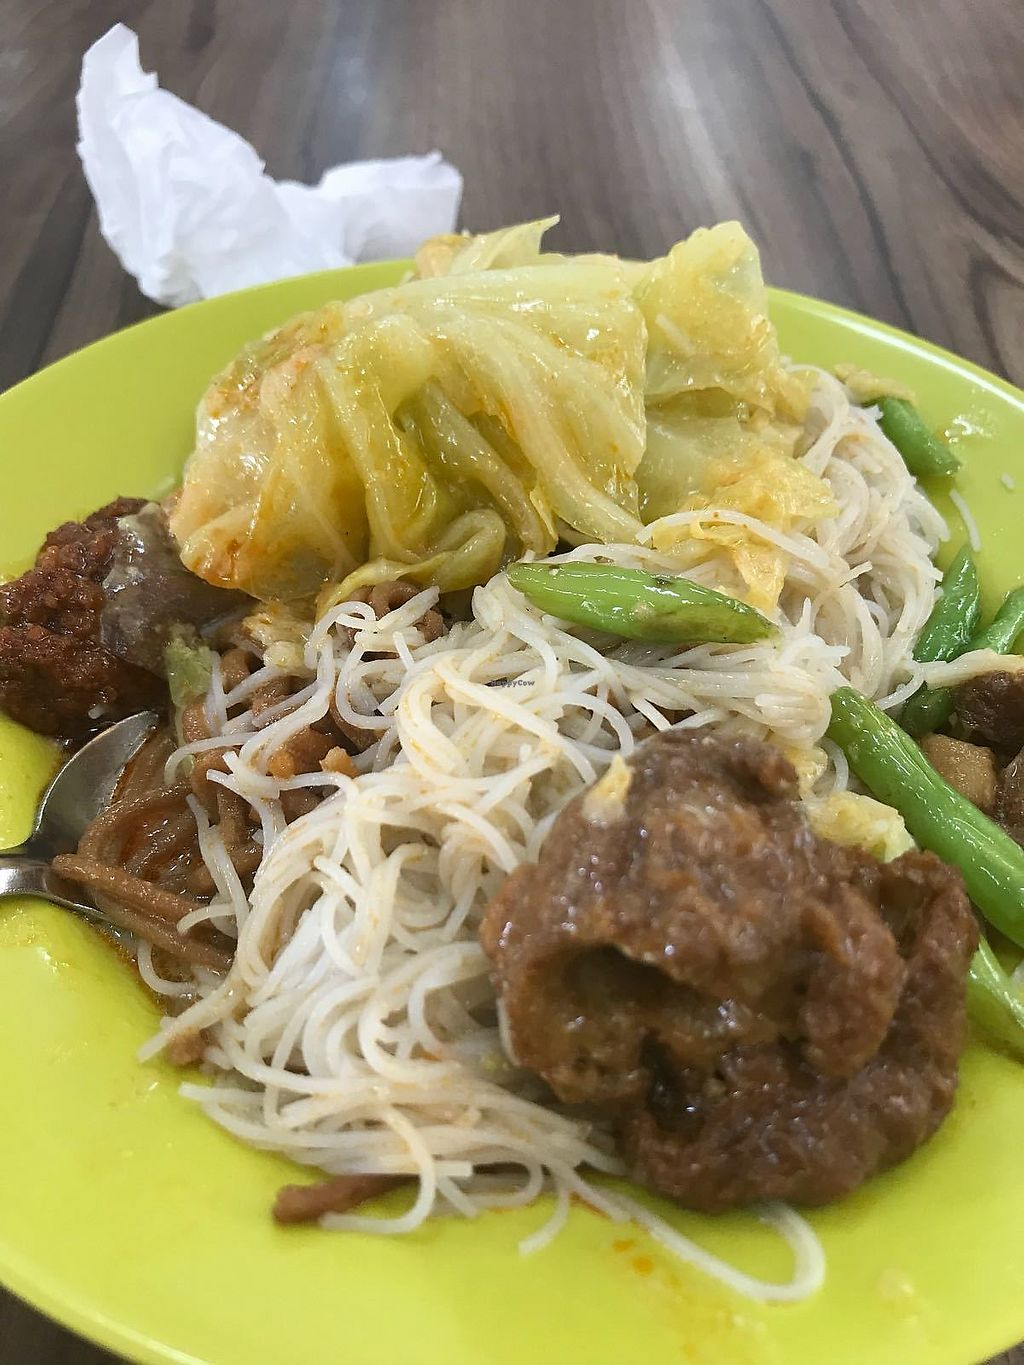 """Photo of Vegetarian Stall  by <a href=""""/members/profile/JimmySeah"""">JimmySeah</a> <br/>economic bee hoon with vegetables curry photos credits to veggietemptation sg <br/> January 10, 2018  - <a href='/contact/abuse/image/109084/345034'>Report</a>"""